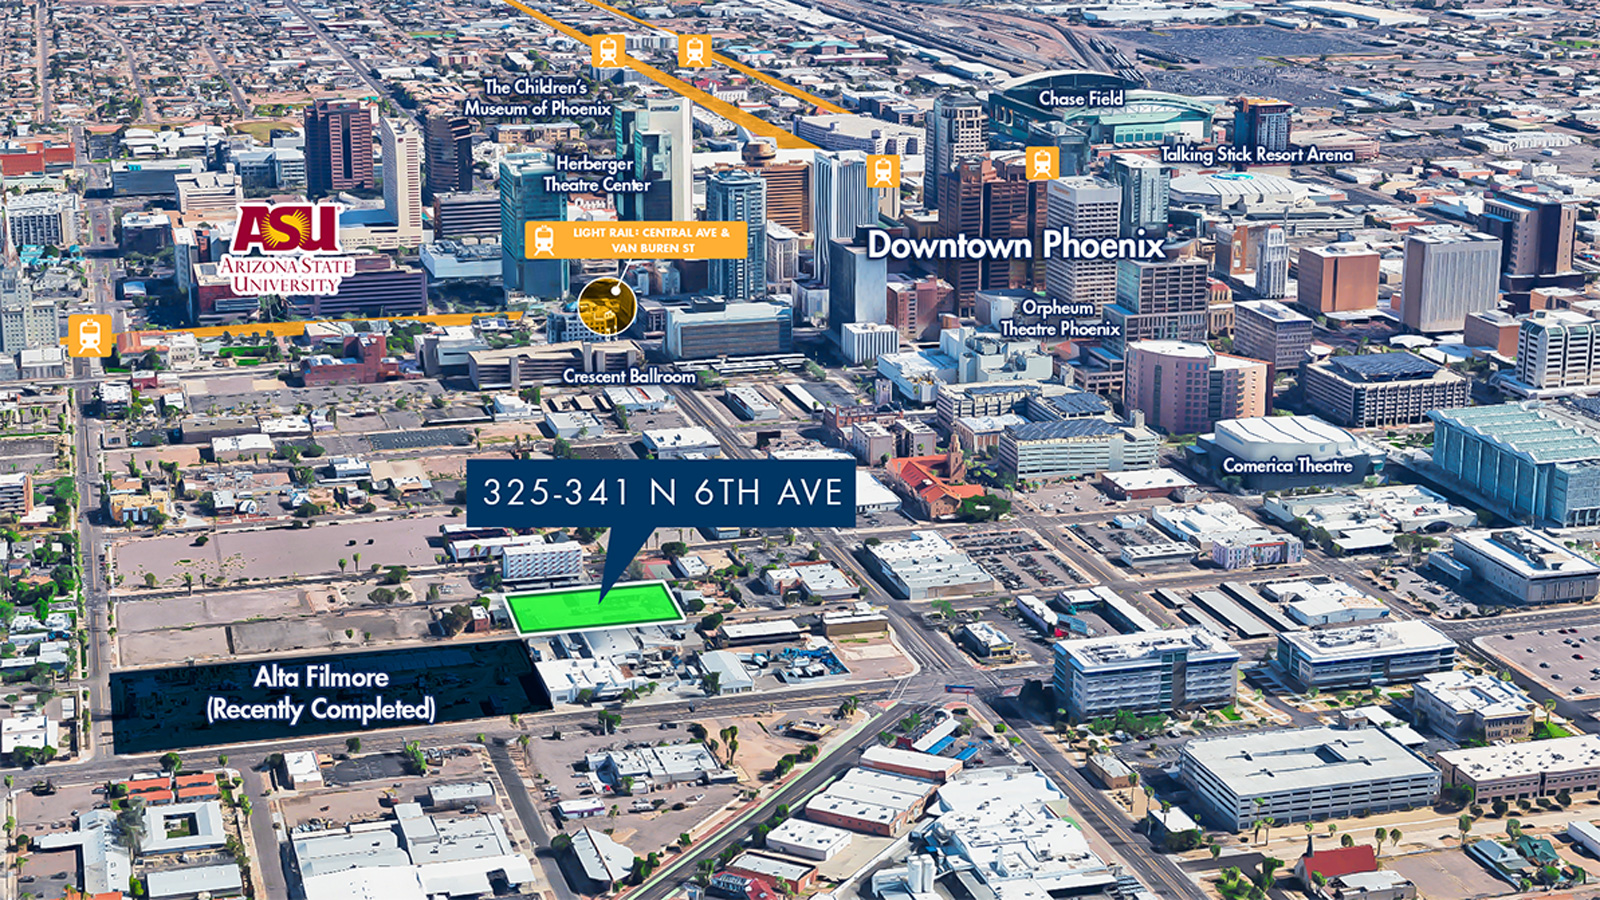 325 - 341 North 6th, Avenue, Phoenix, AZ 85004 | 0.83 Acres | Zoned DTC-VANB | $1,800,000 | $2,168,678 Per Acre | $49.66 Per SF